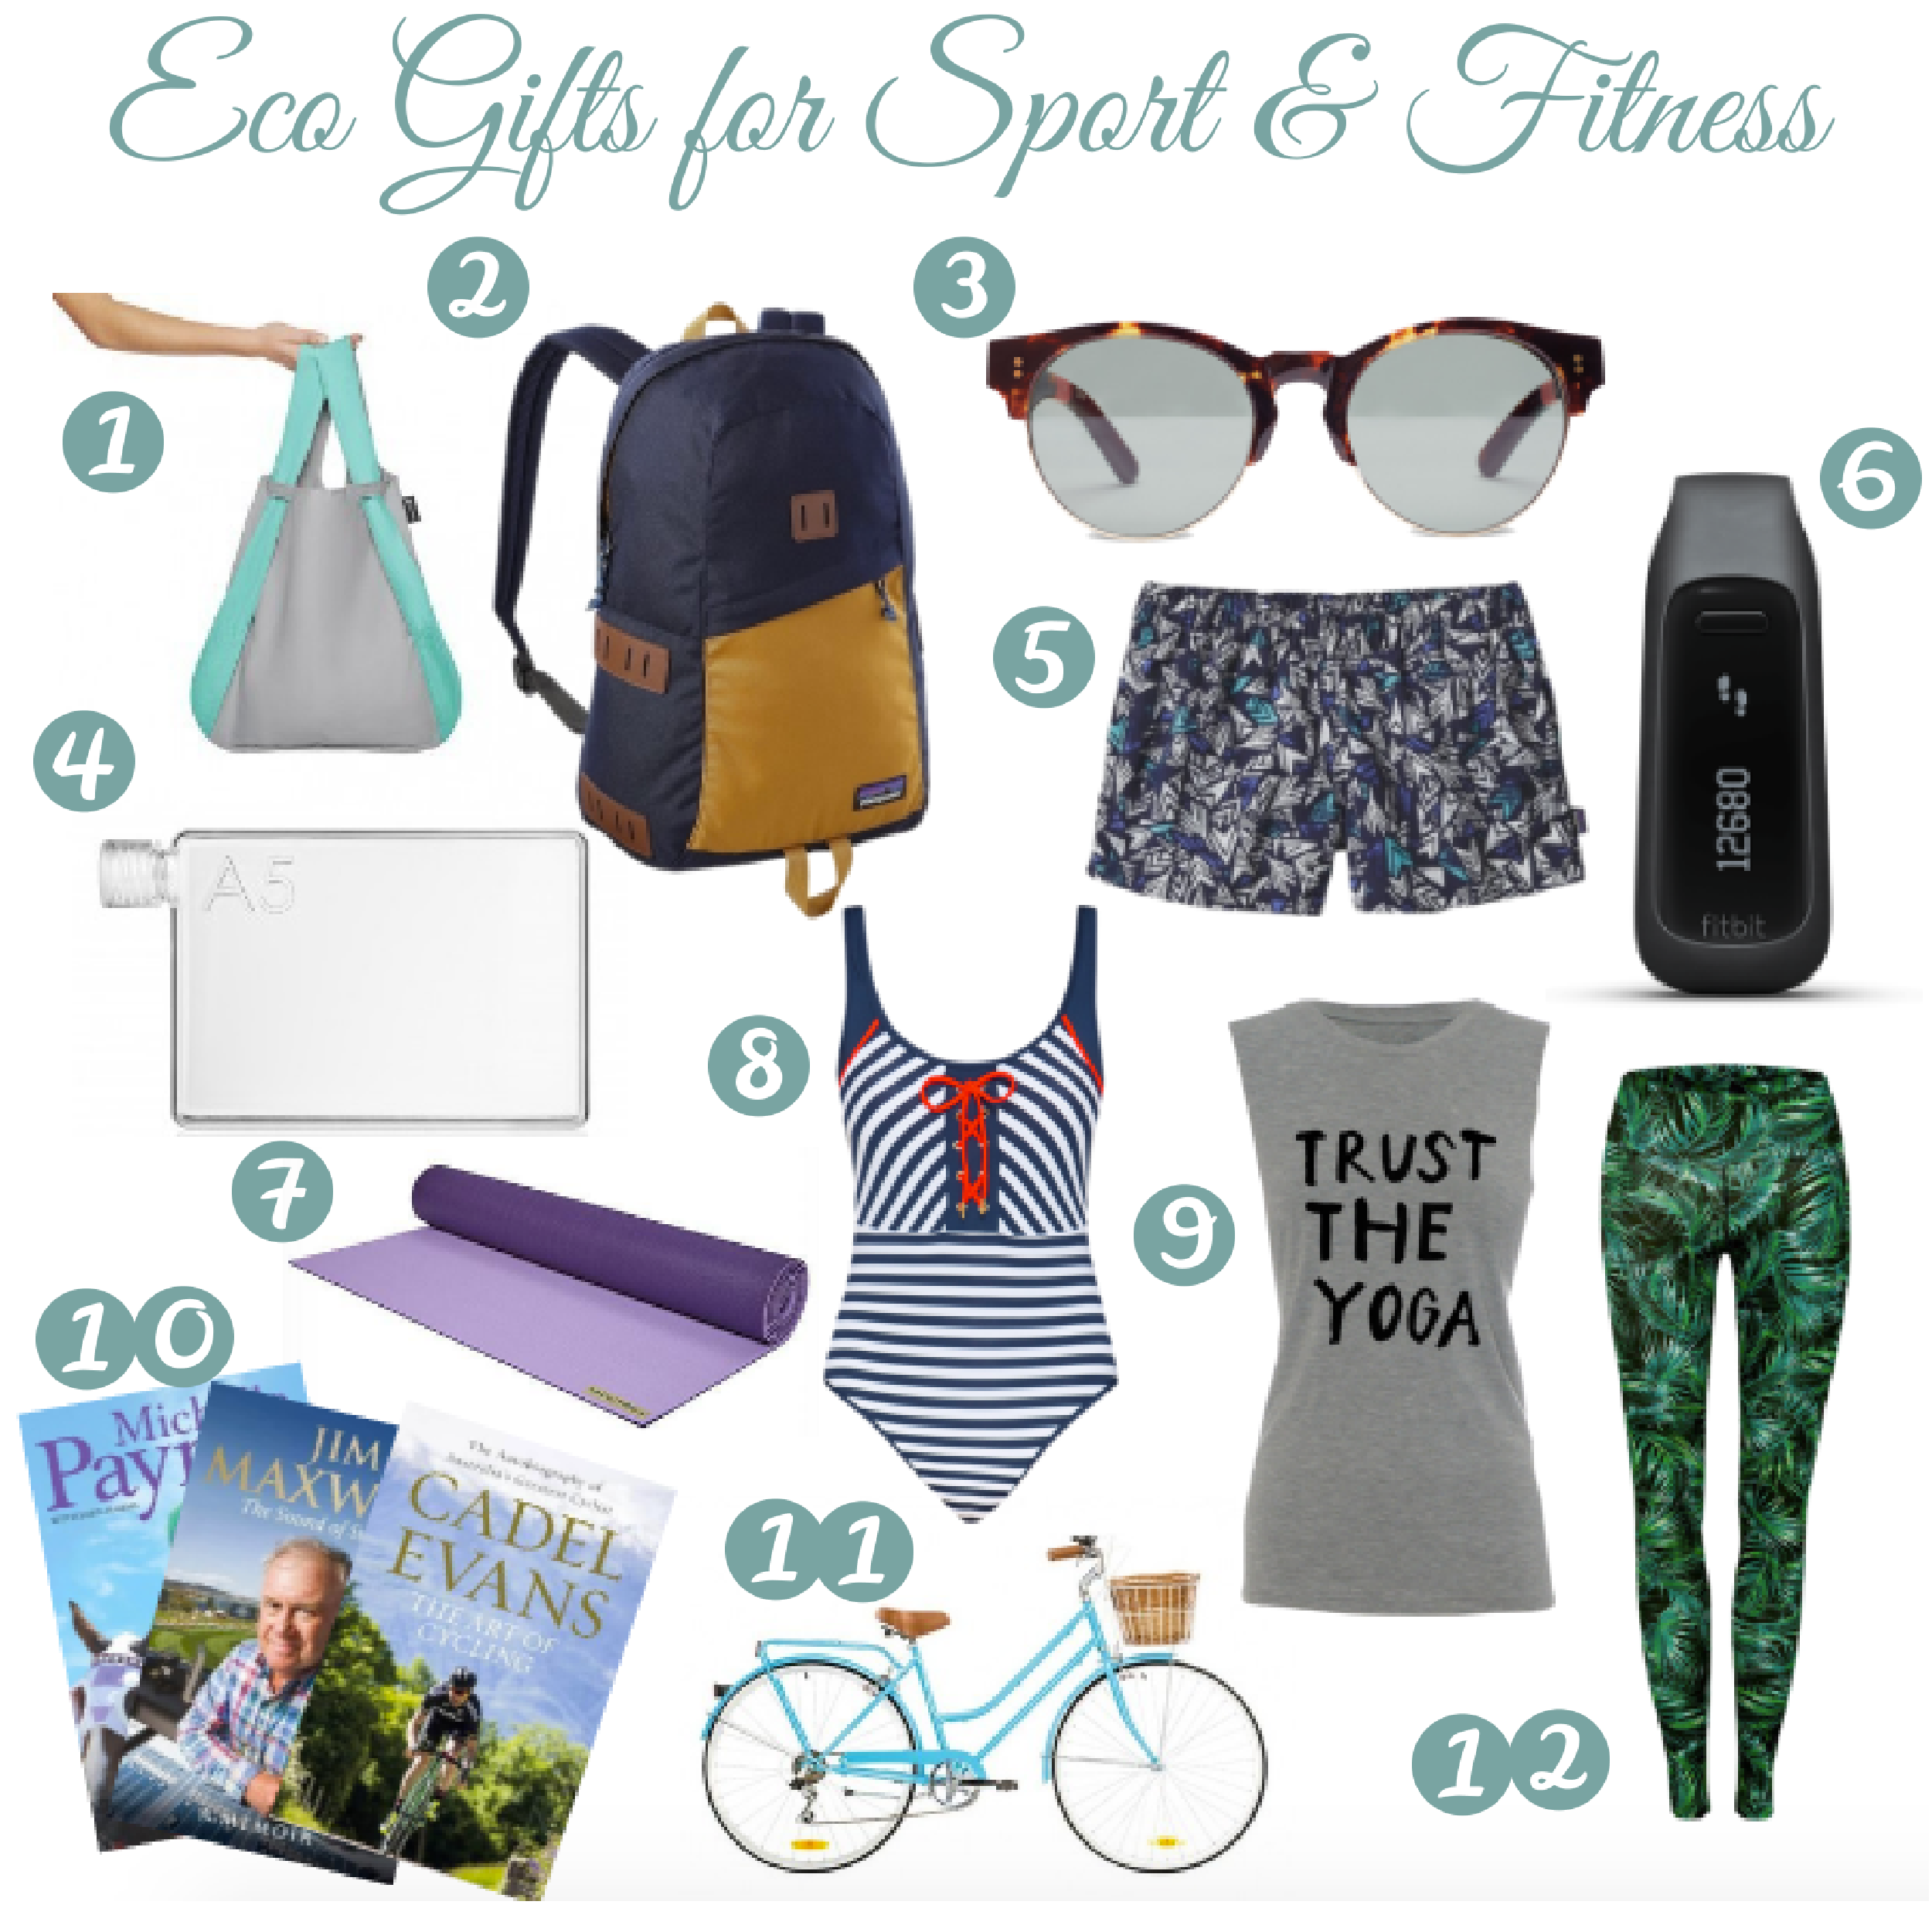 Eco Gifts for Sport and Fitness | I Spy Plum Pie